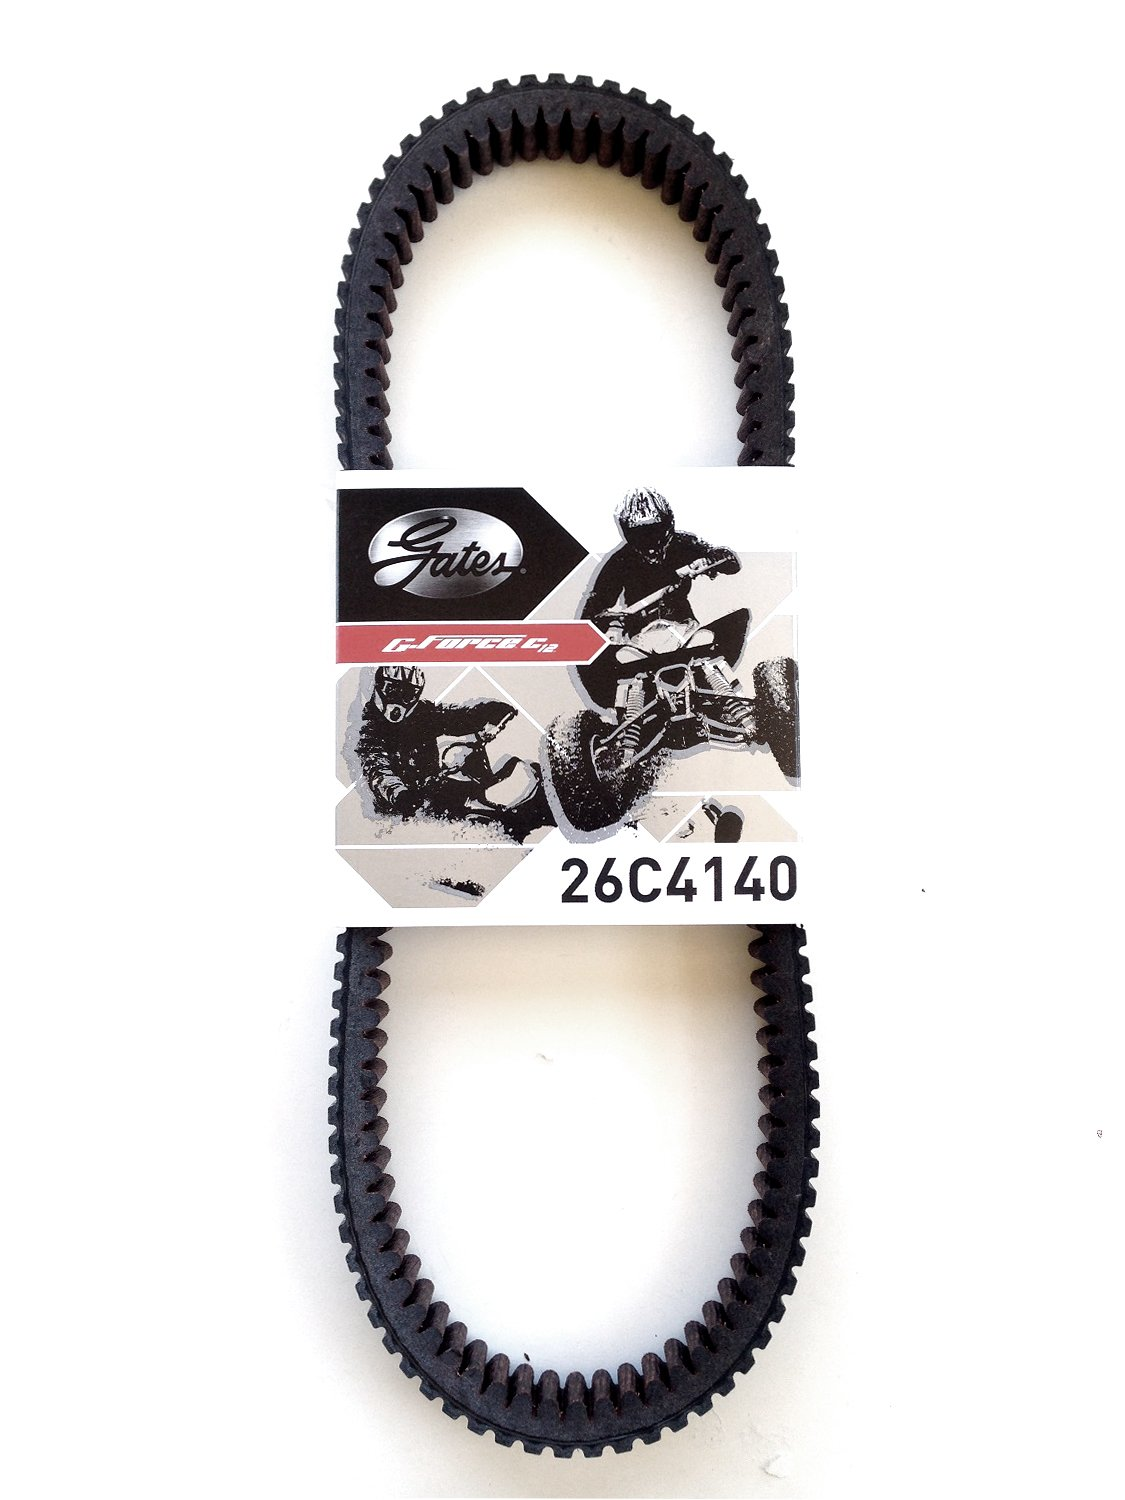 Polaris RZR 900 Belt 4/S/XC ACE 900 2015-2019 Gates CVT Drive Belt 26C4140 by Dobeck Performance